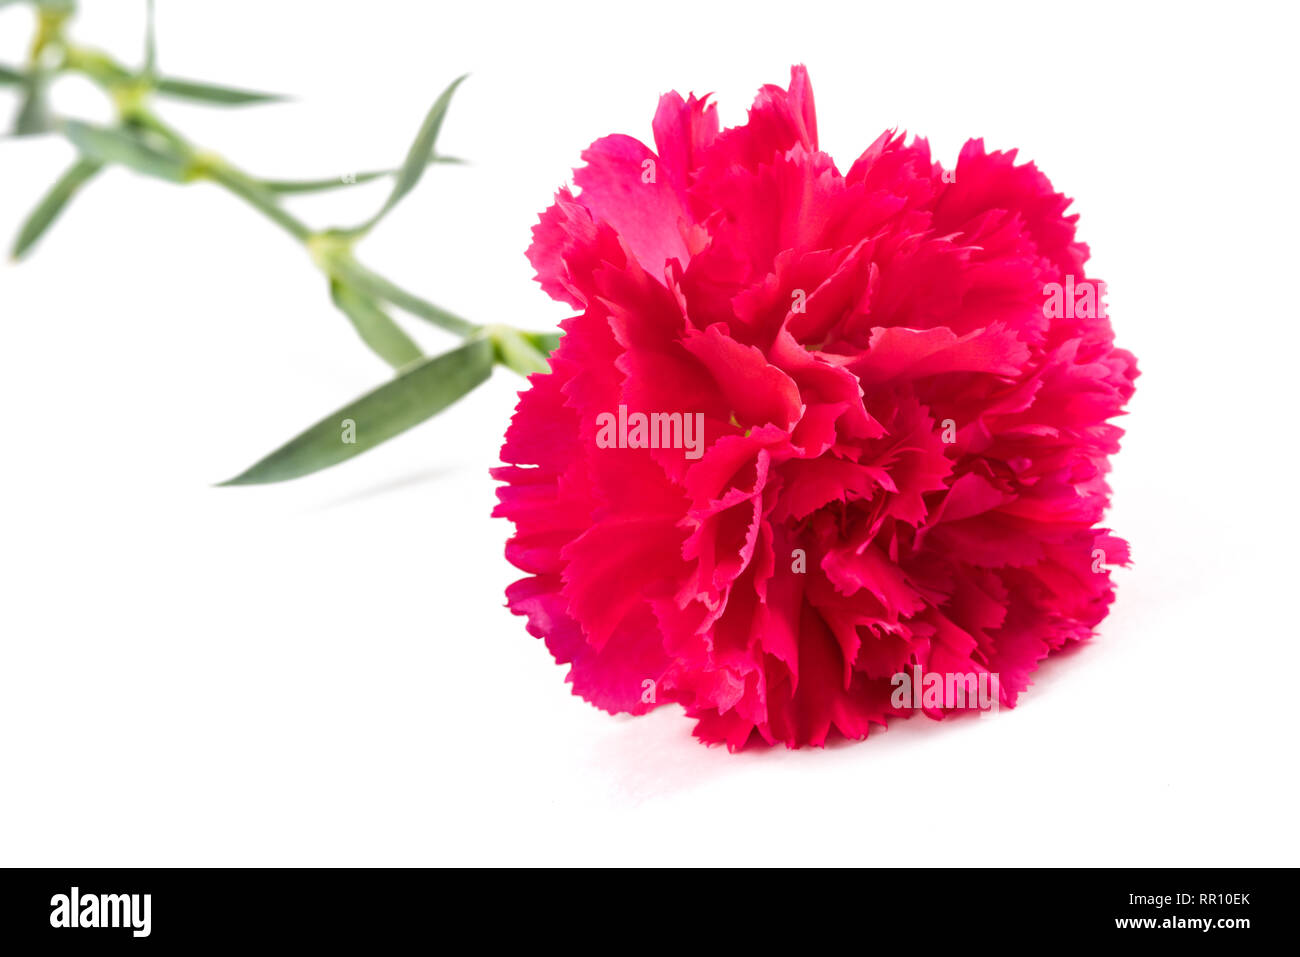 Pink carnation  isolated on white background - Stock Image